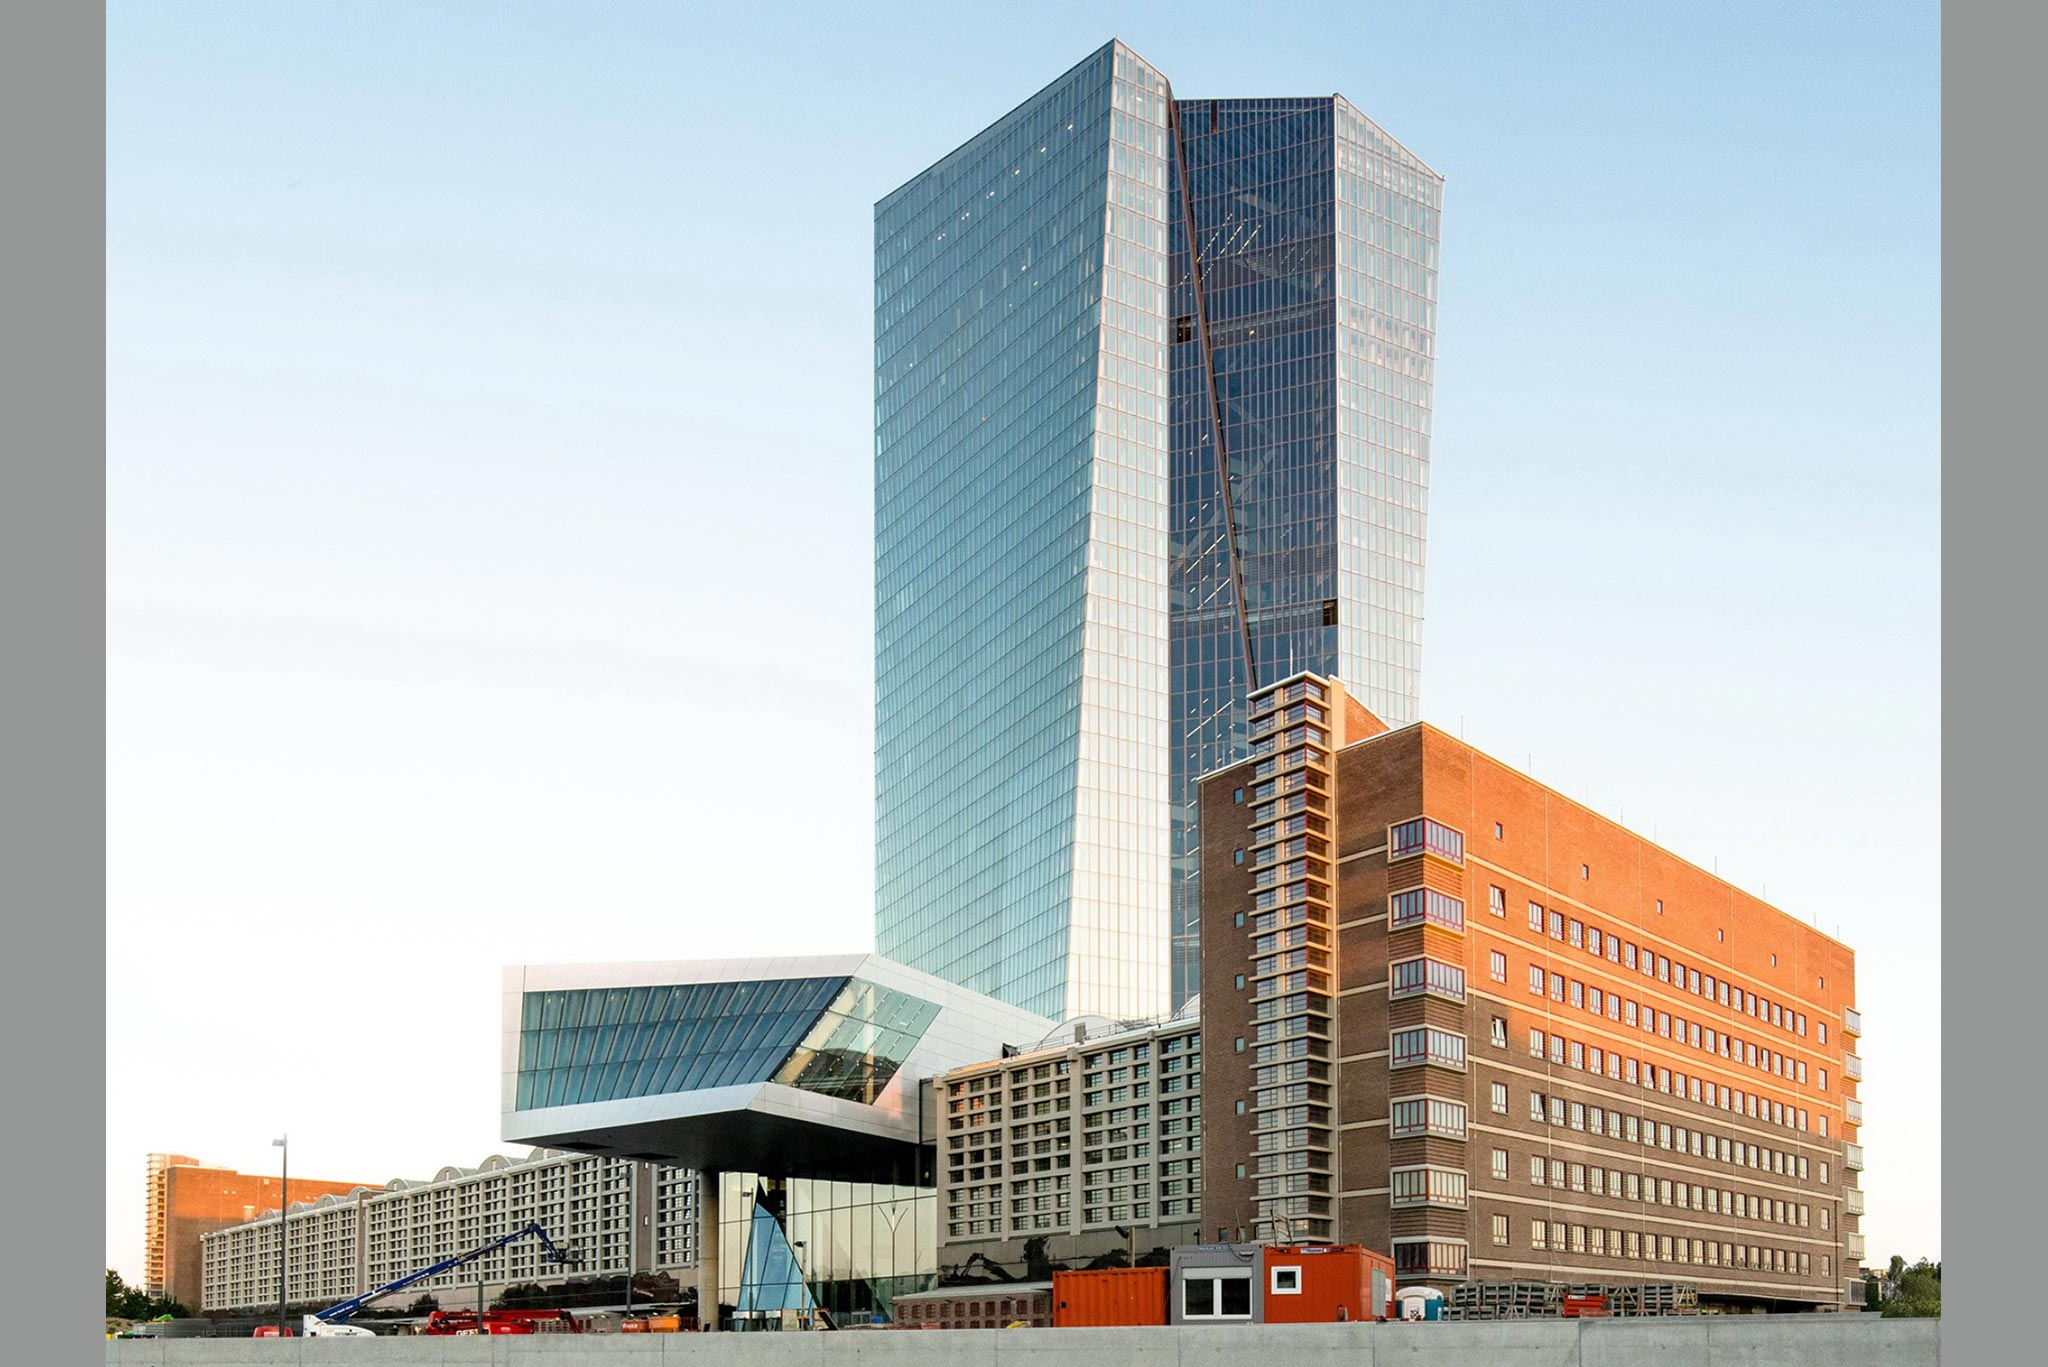 European Central Bank, Frankfurt/Main, Germany: photo credit © European Central Bank/Robert Metsch